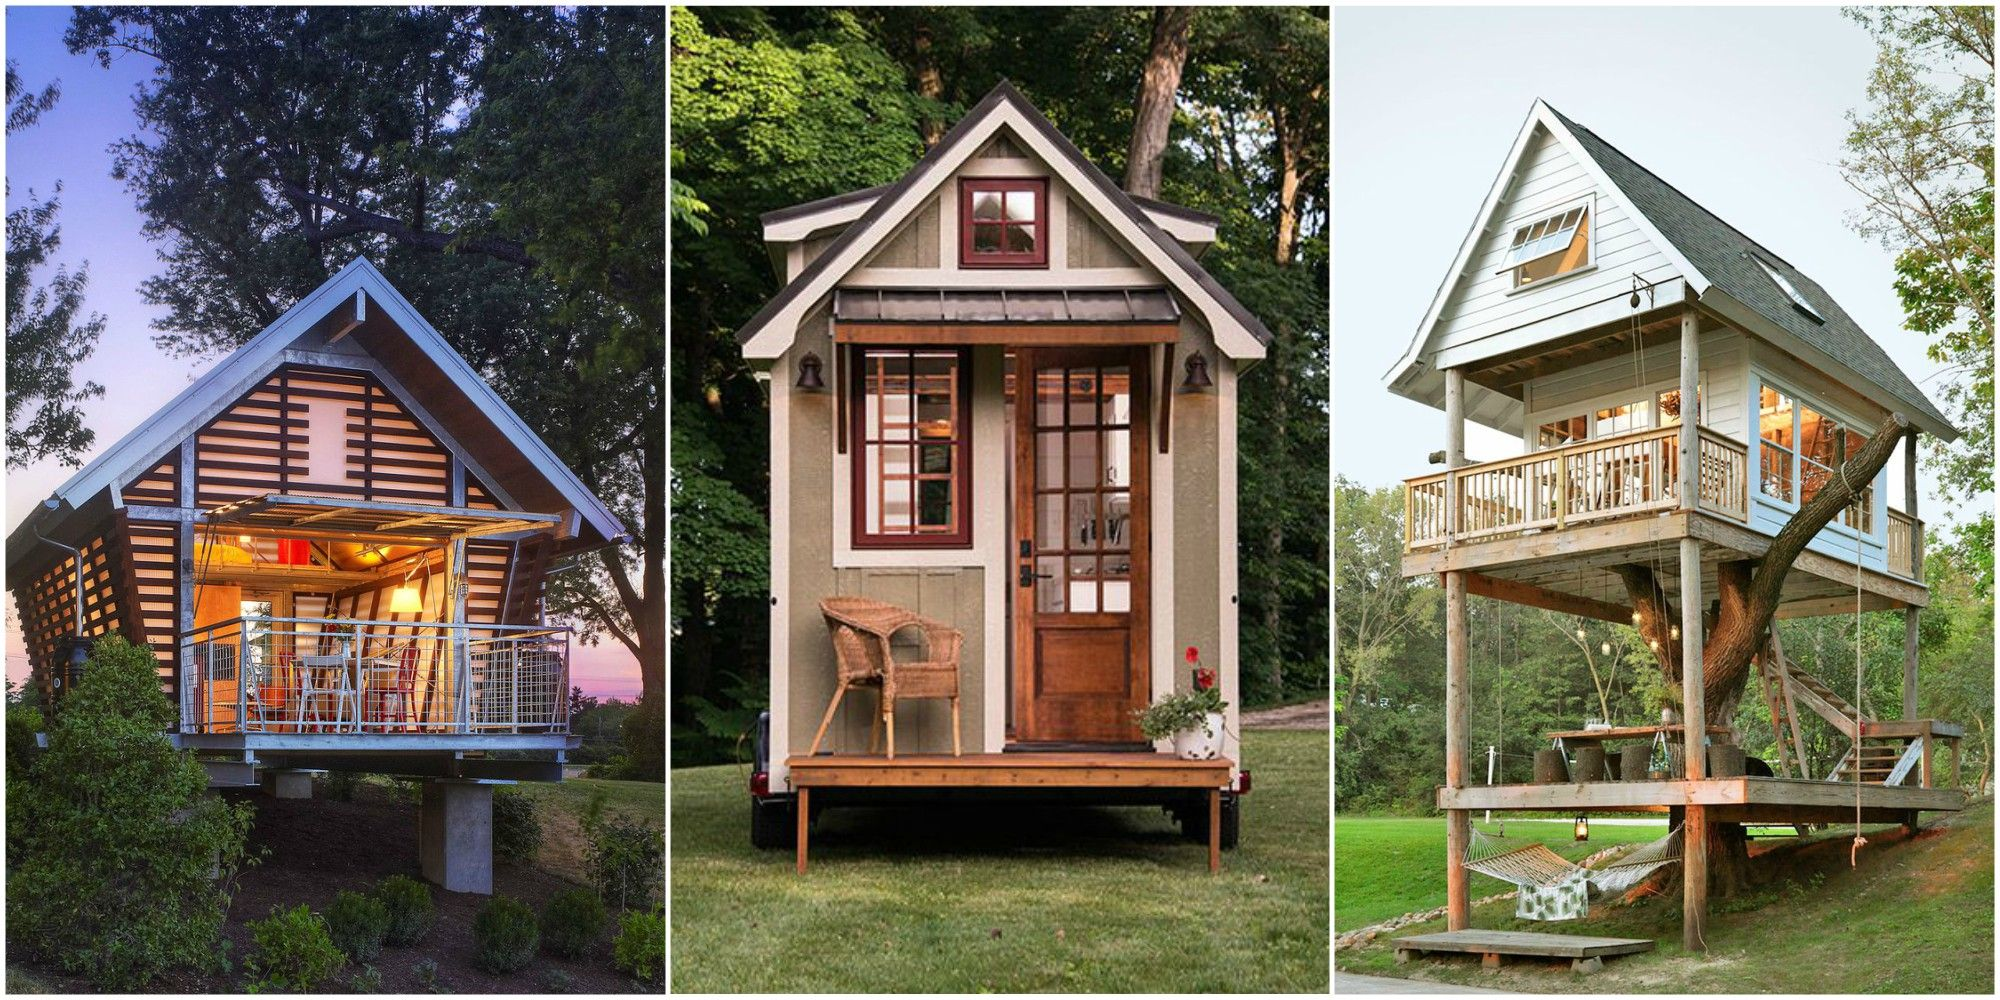 70 Impressive Tiny Houses That Maximize Function and Style